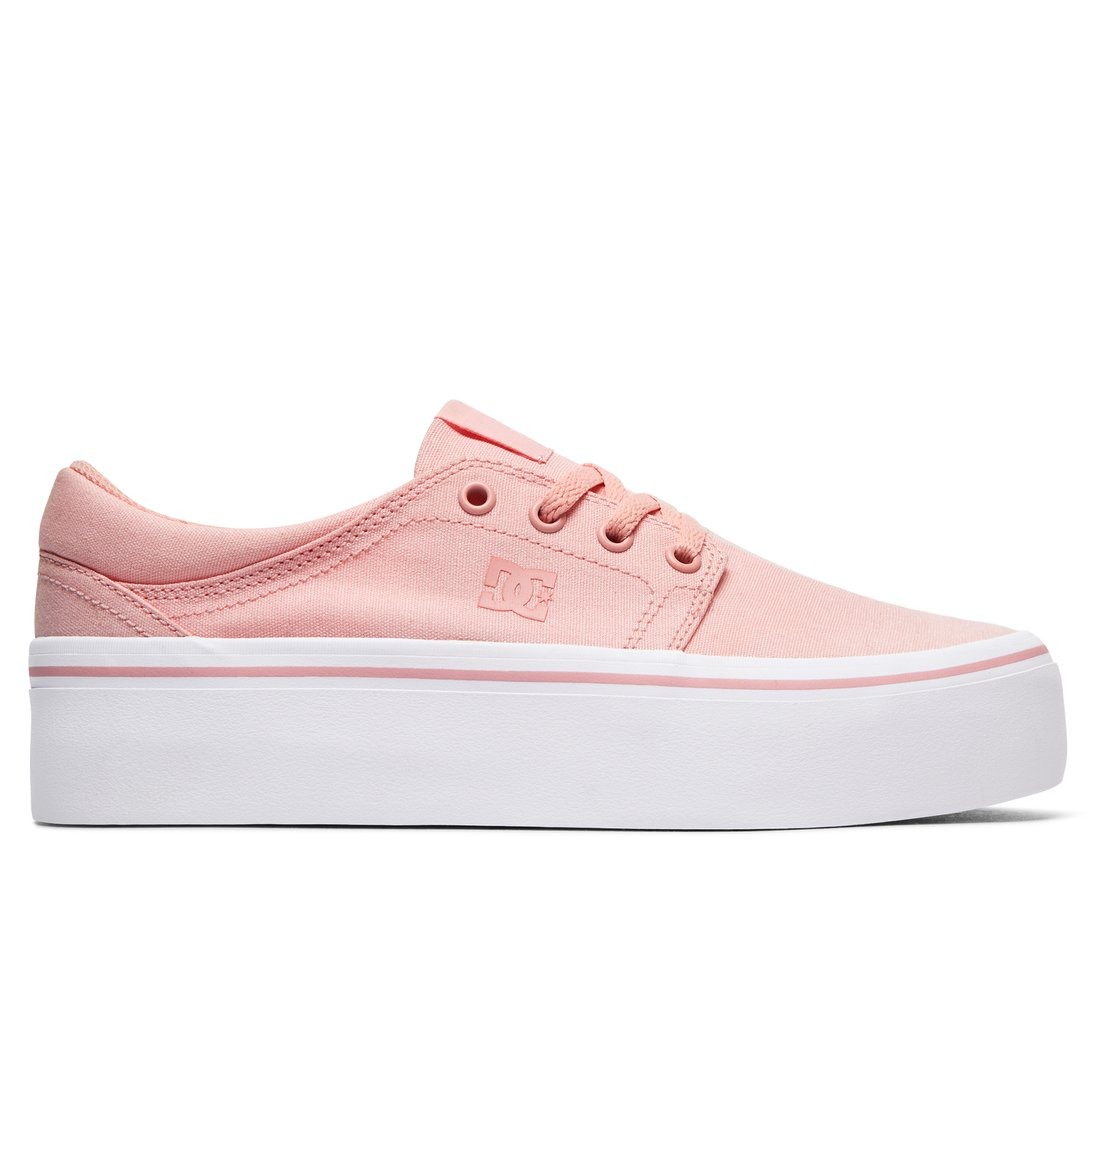 DC Shoes Schuhe »Trase Platform TX«, rosa, Rose